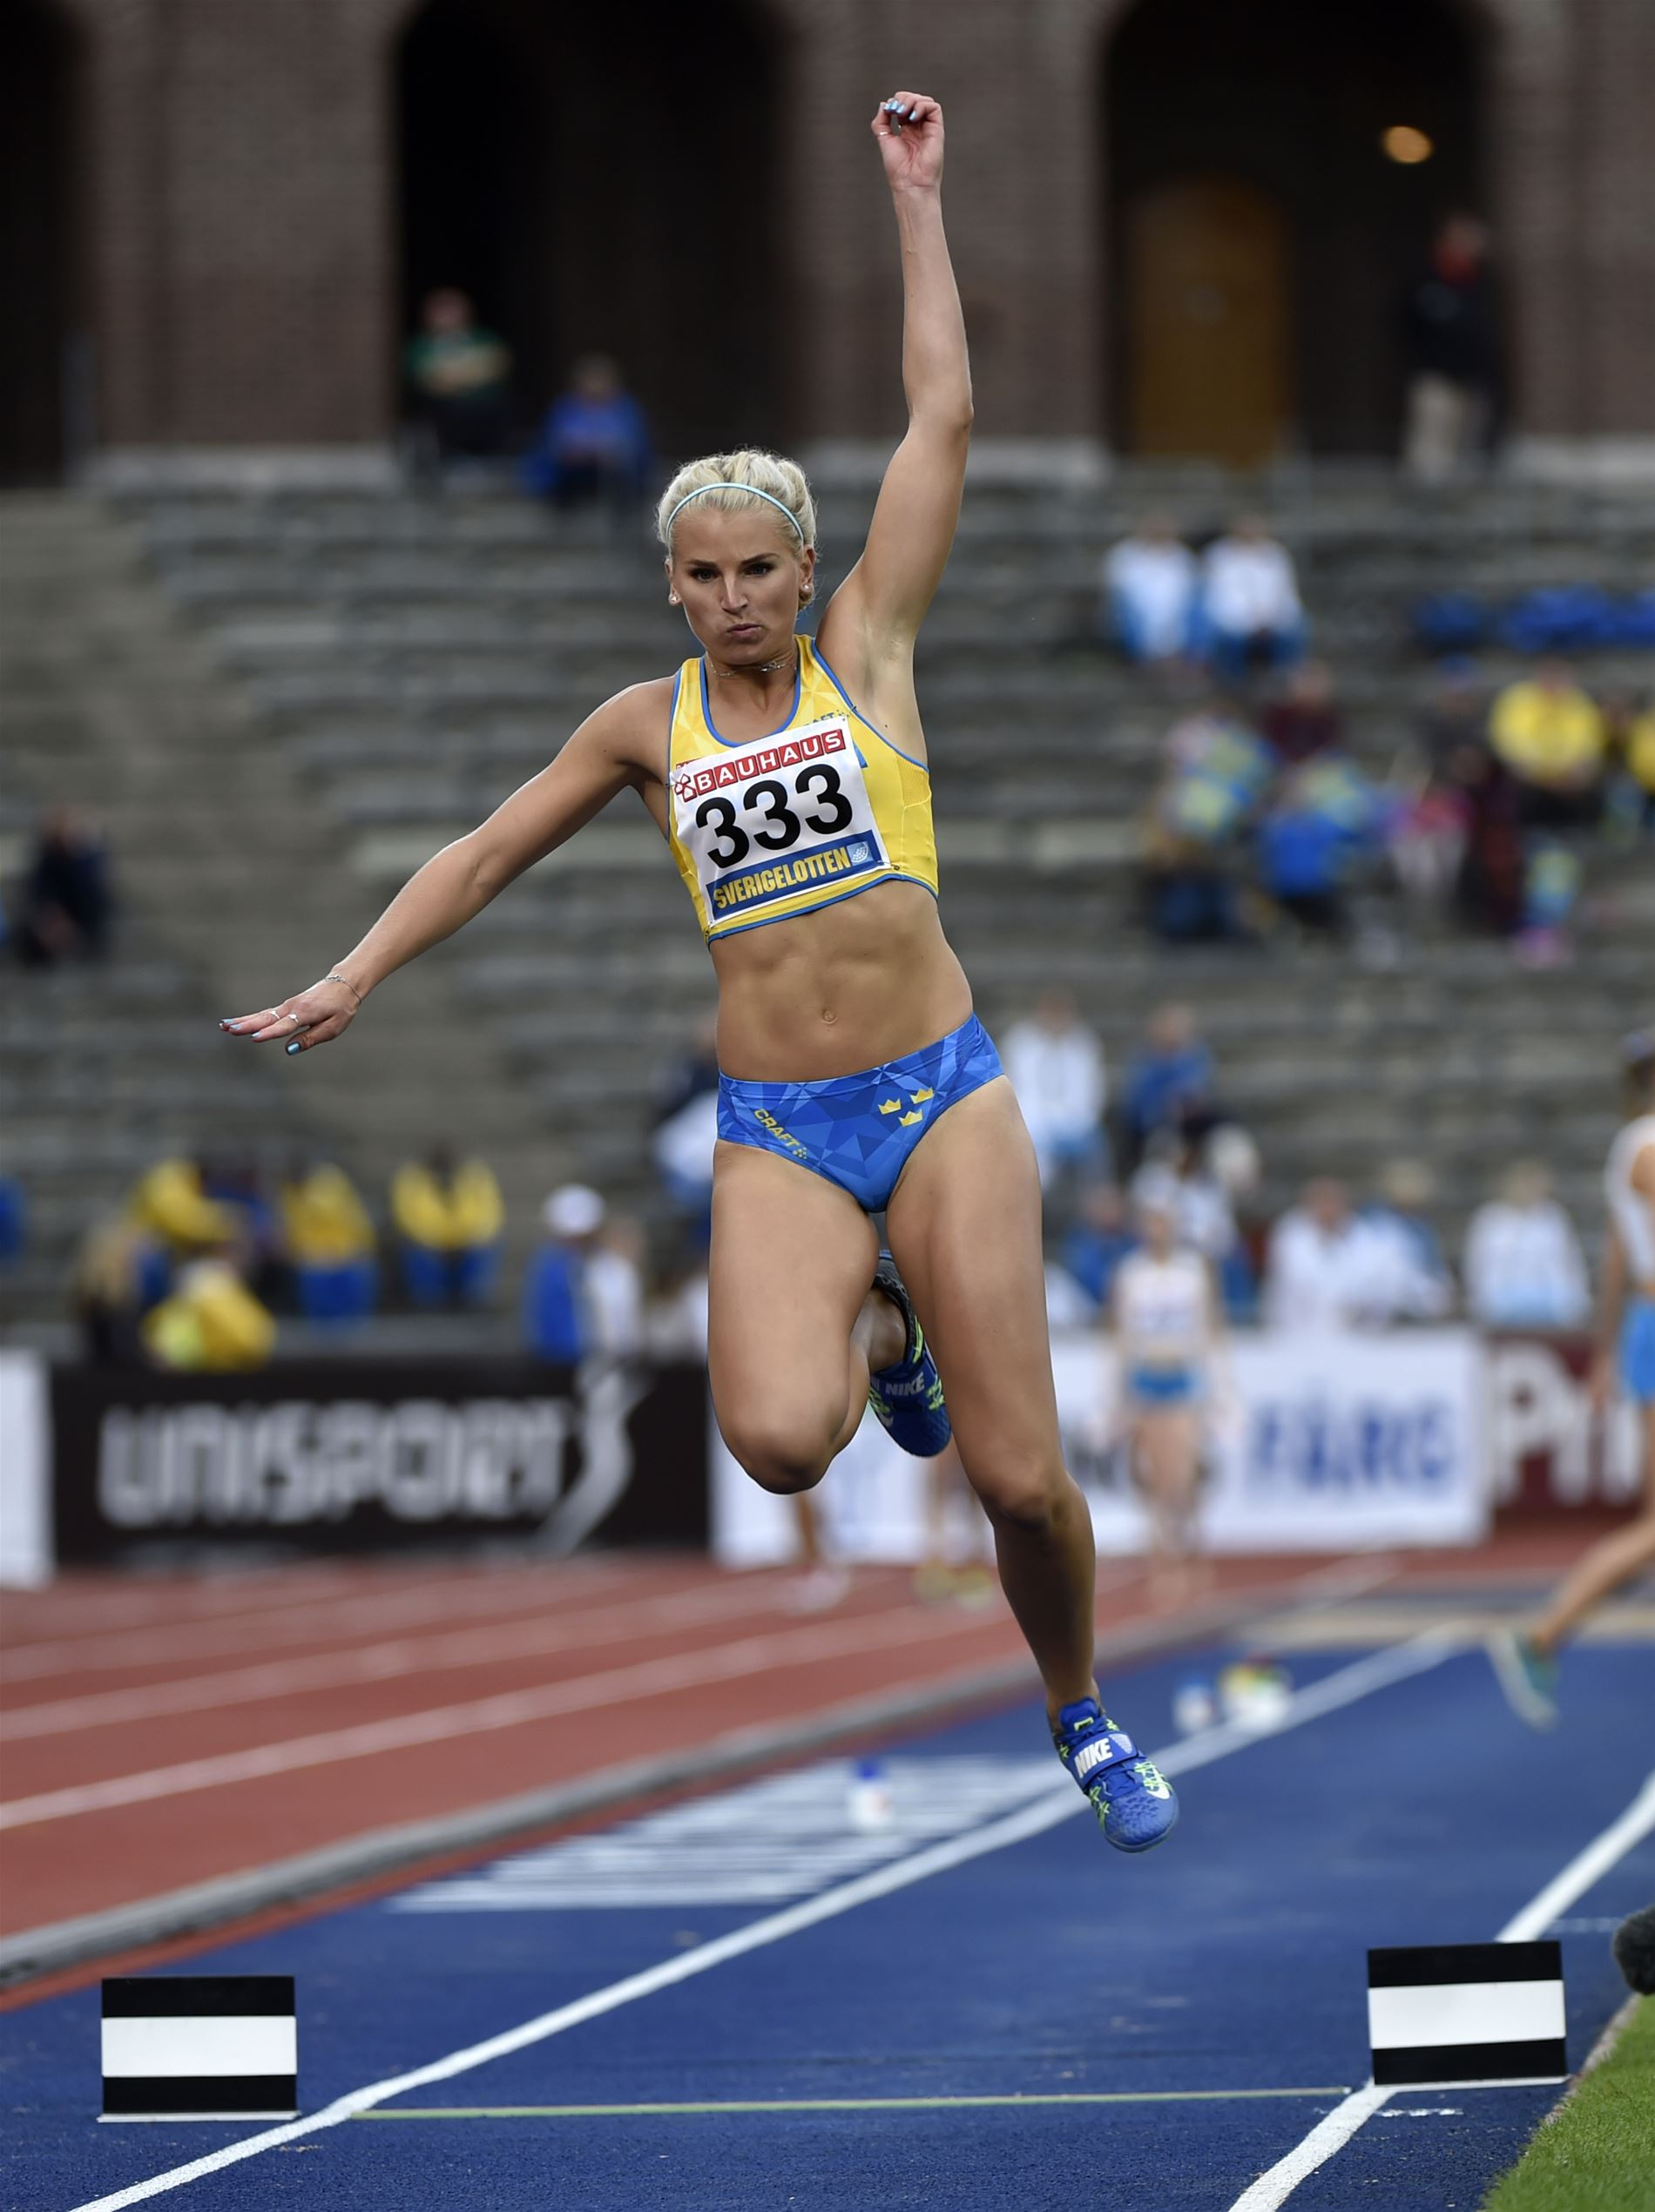 Swedish Athletics Indoor Championships 2018 image